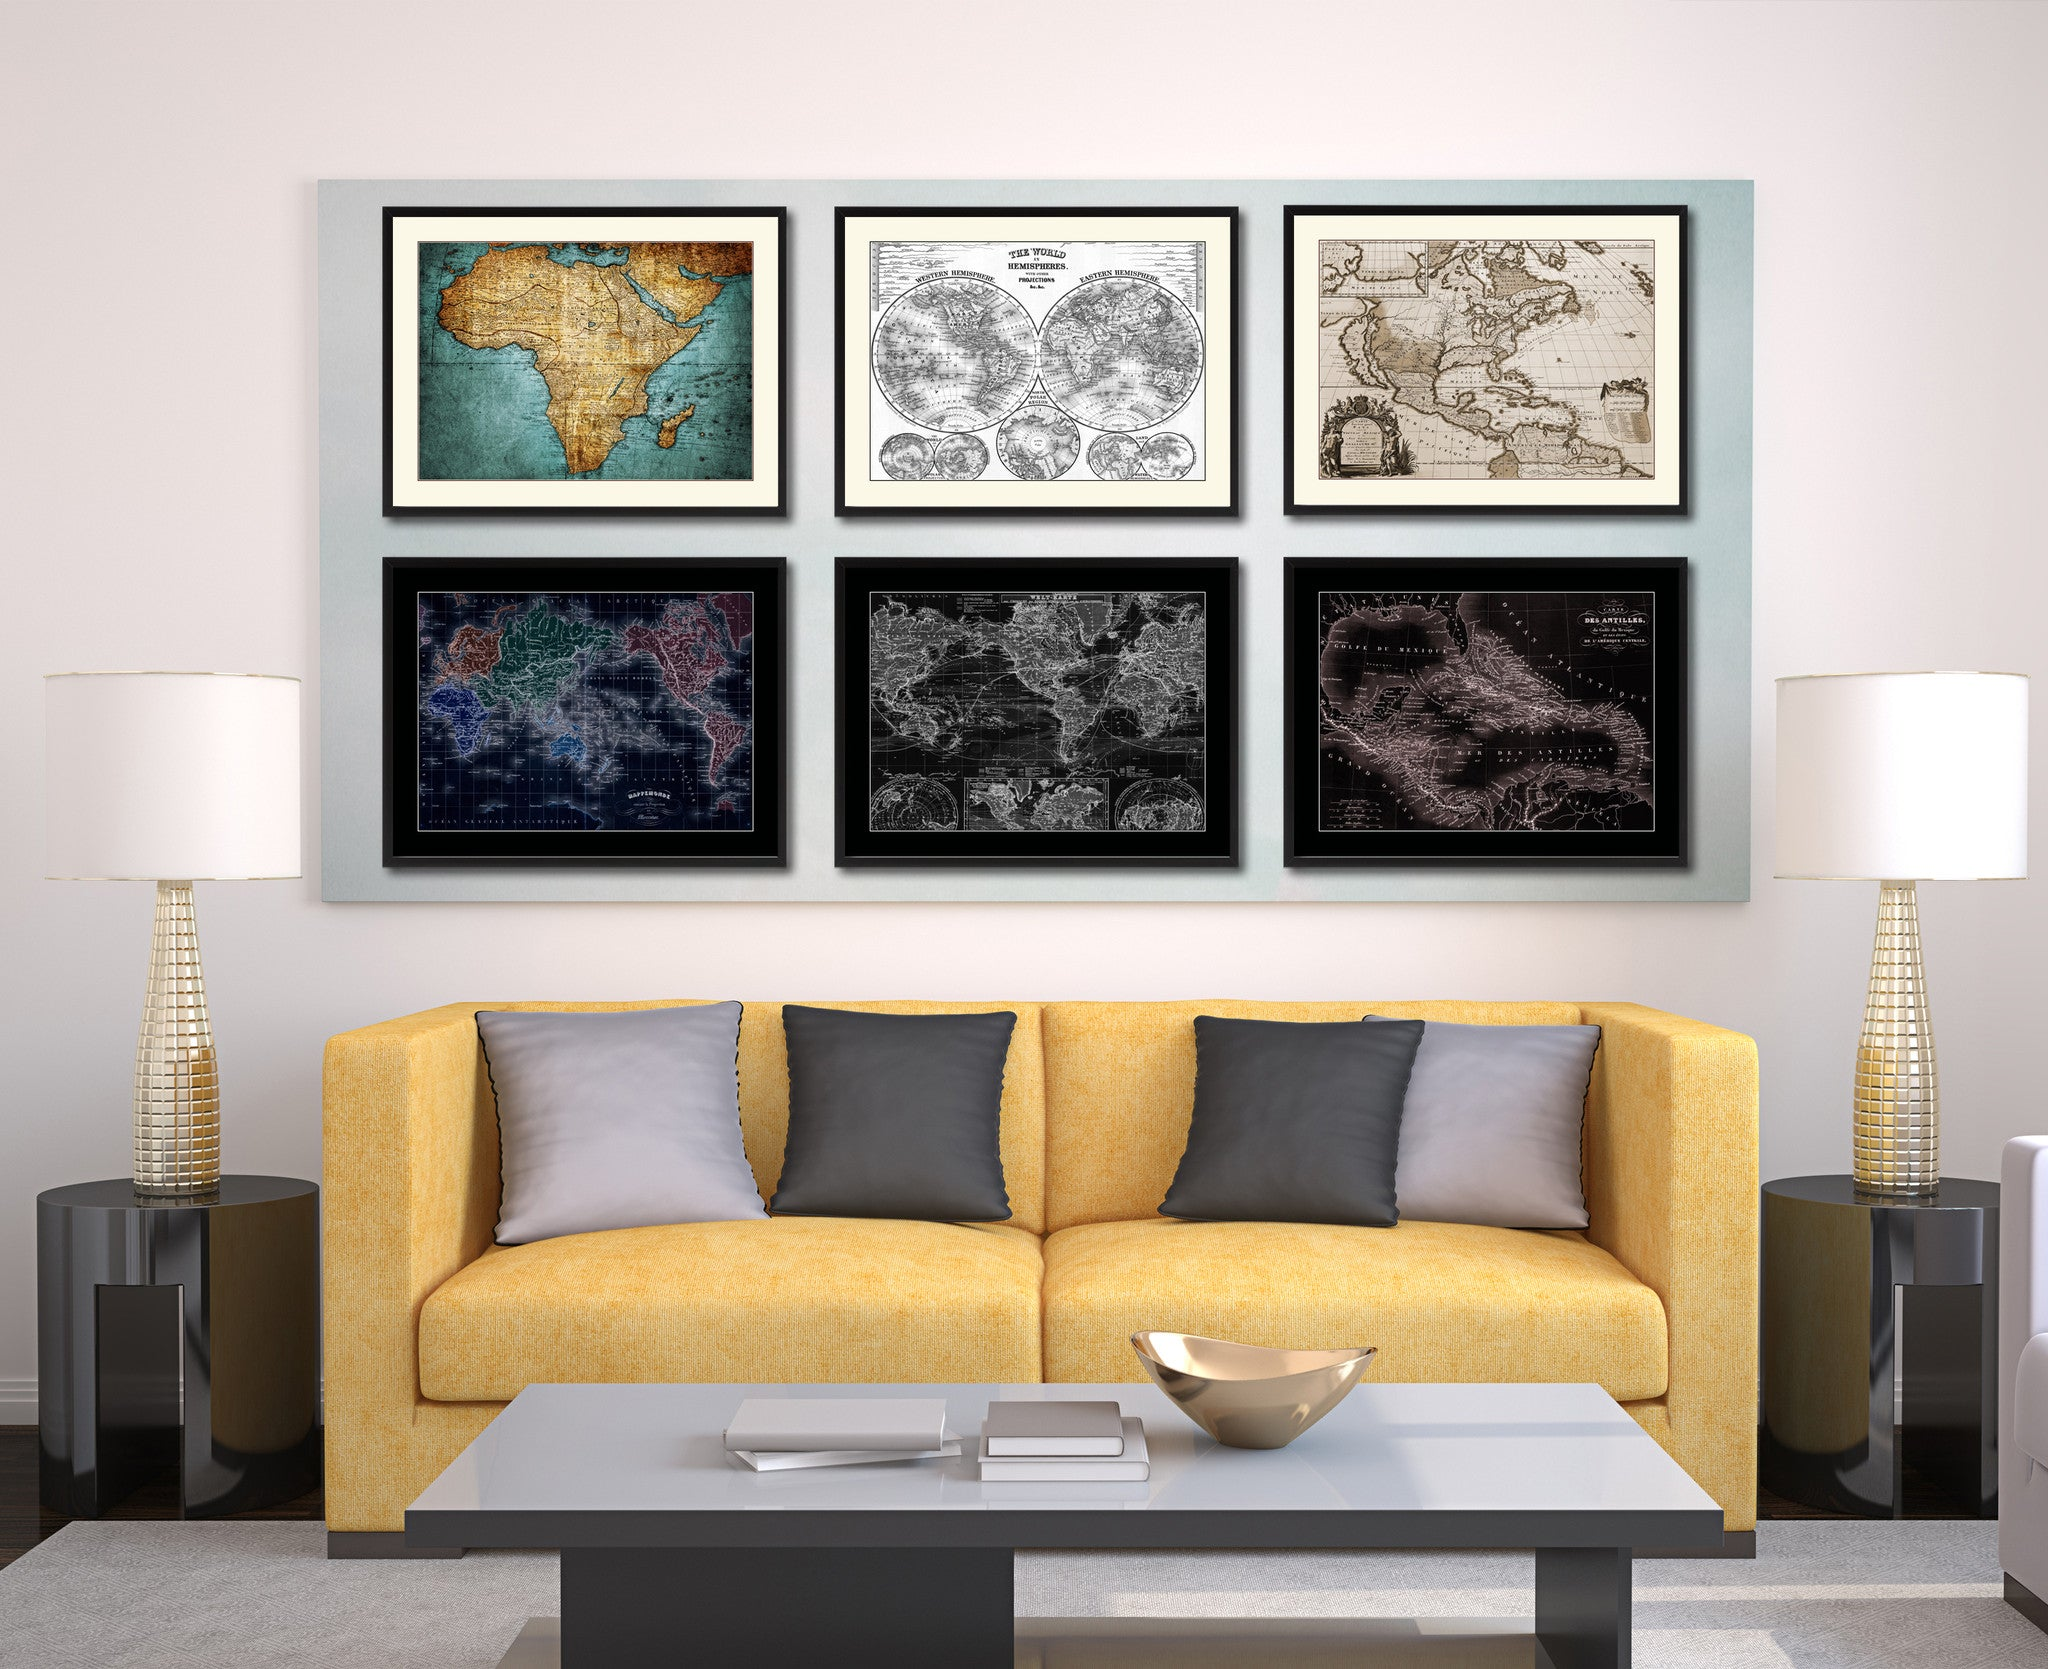 West Indies Caribbean Vintage Vivid Sepia Map Canvas Print, Picture Frames Home Decor Wall Art Decoration Gifts